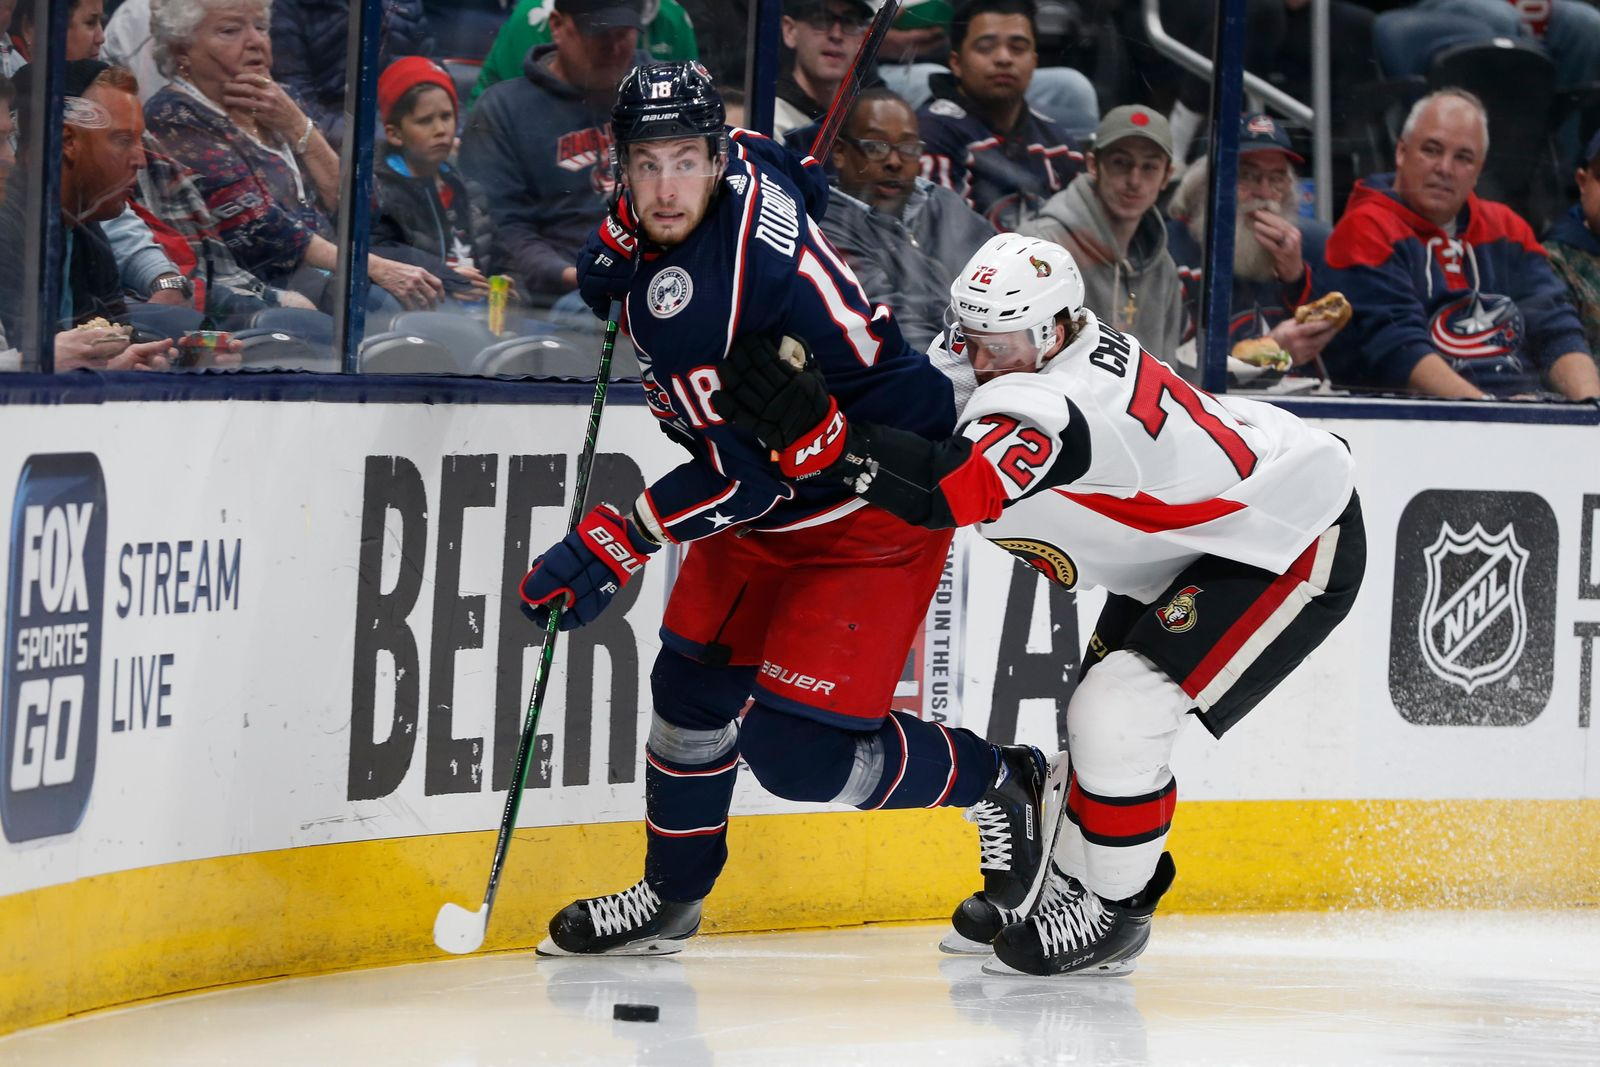 Columbus Blue Jackets' Pierre-Luc Dubois, left, looks for an open pass as Ottawa Senators' Thomas Chabot defends during the second period of an NHL hockey game Monday, Feb. 24, 2020, in Columbus, Ohio. (AP Photo/Jay LaPrete)